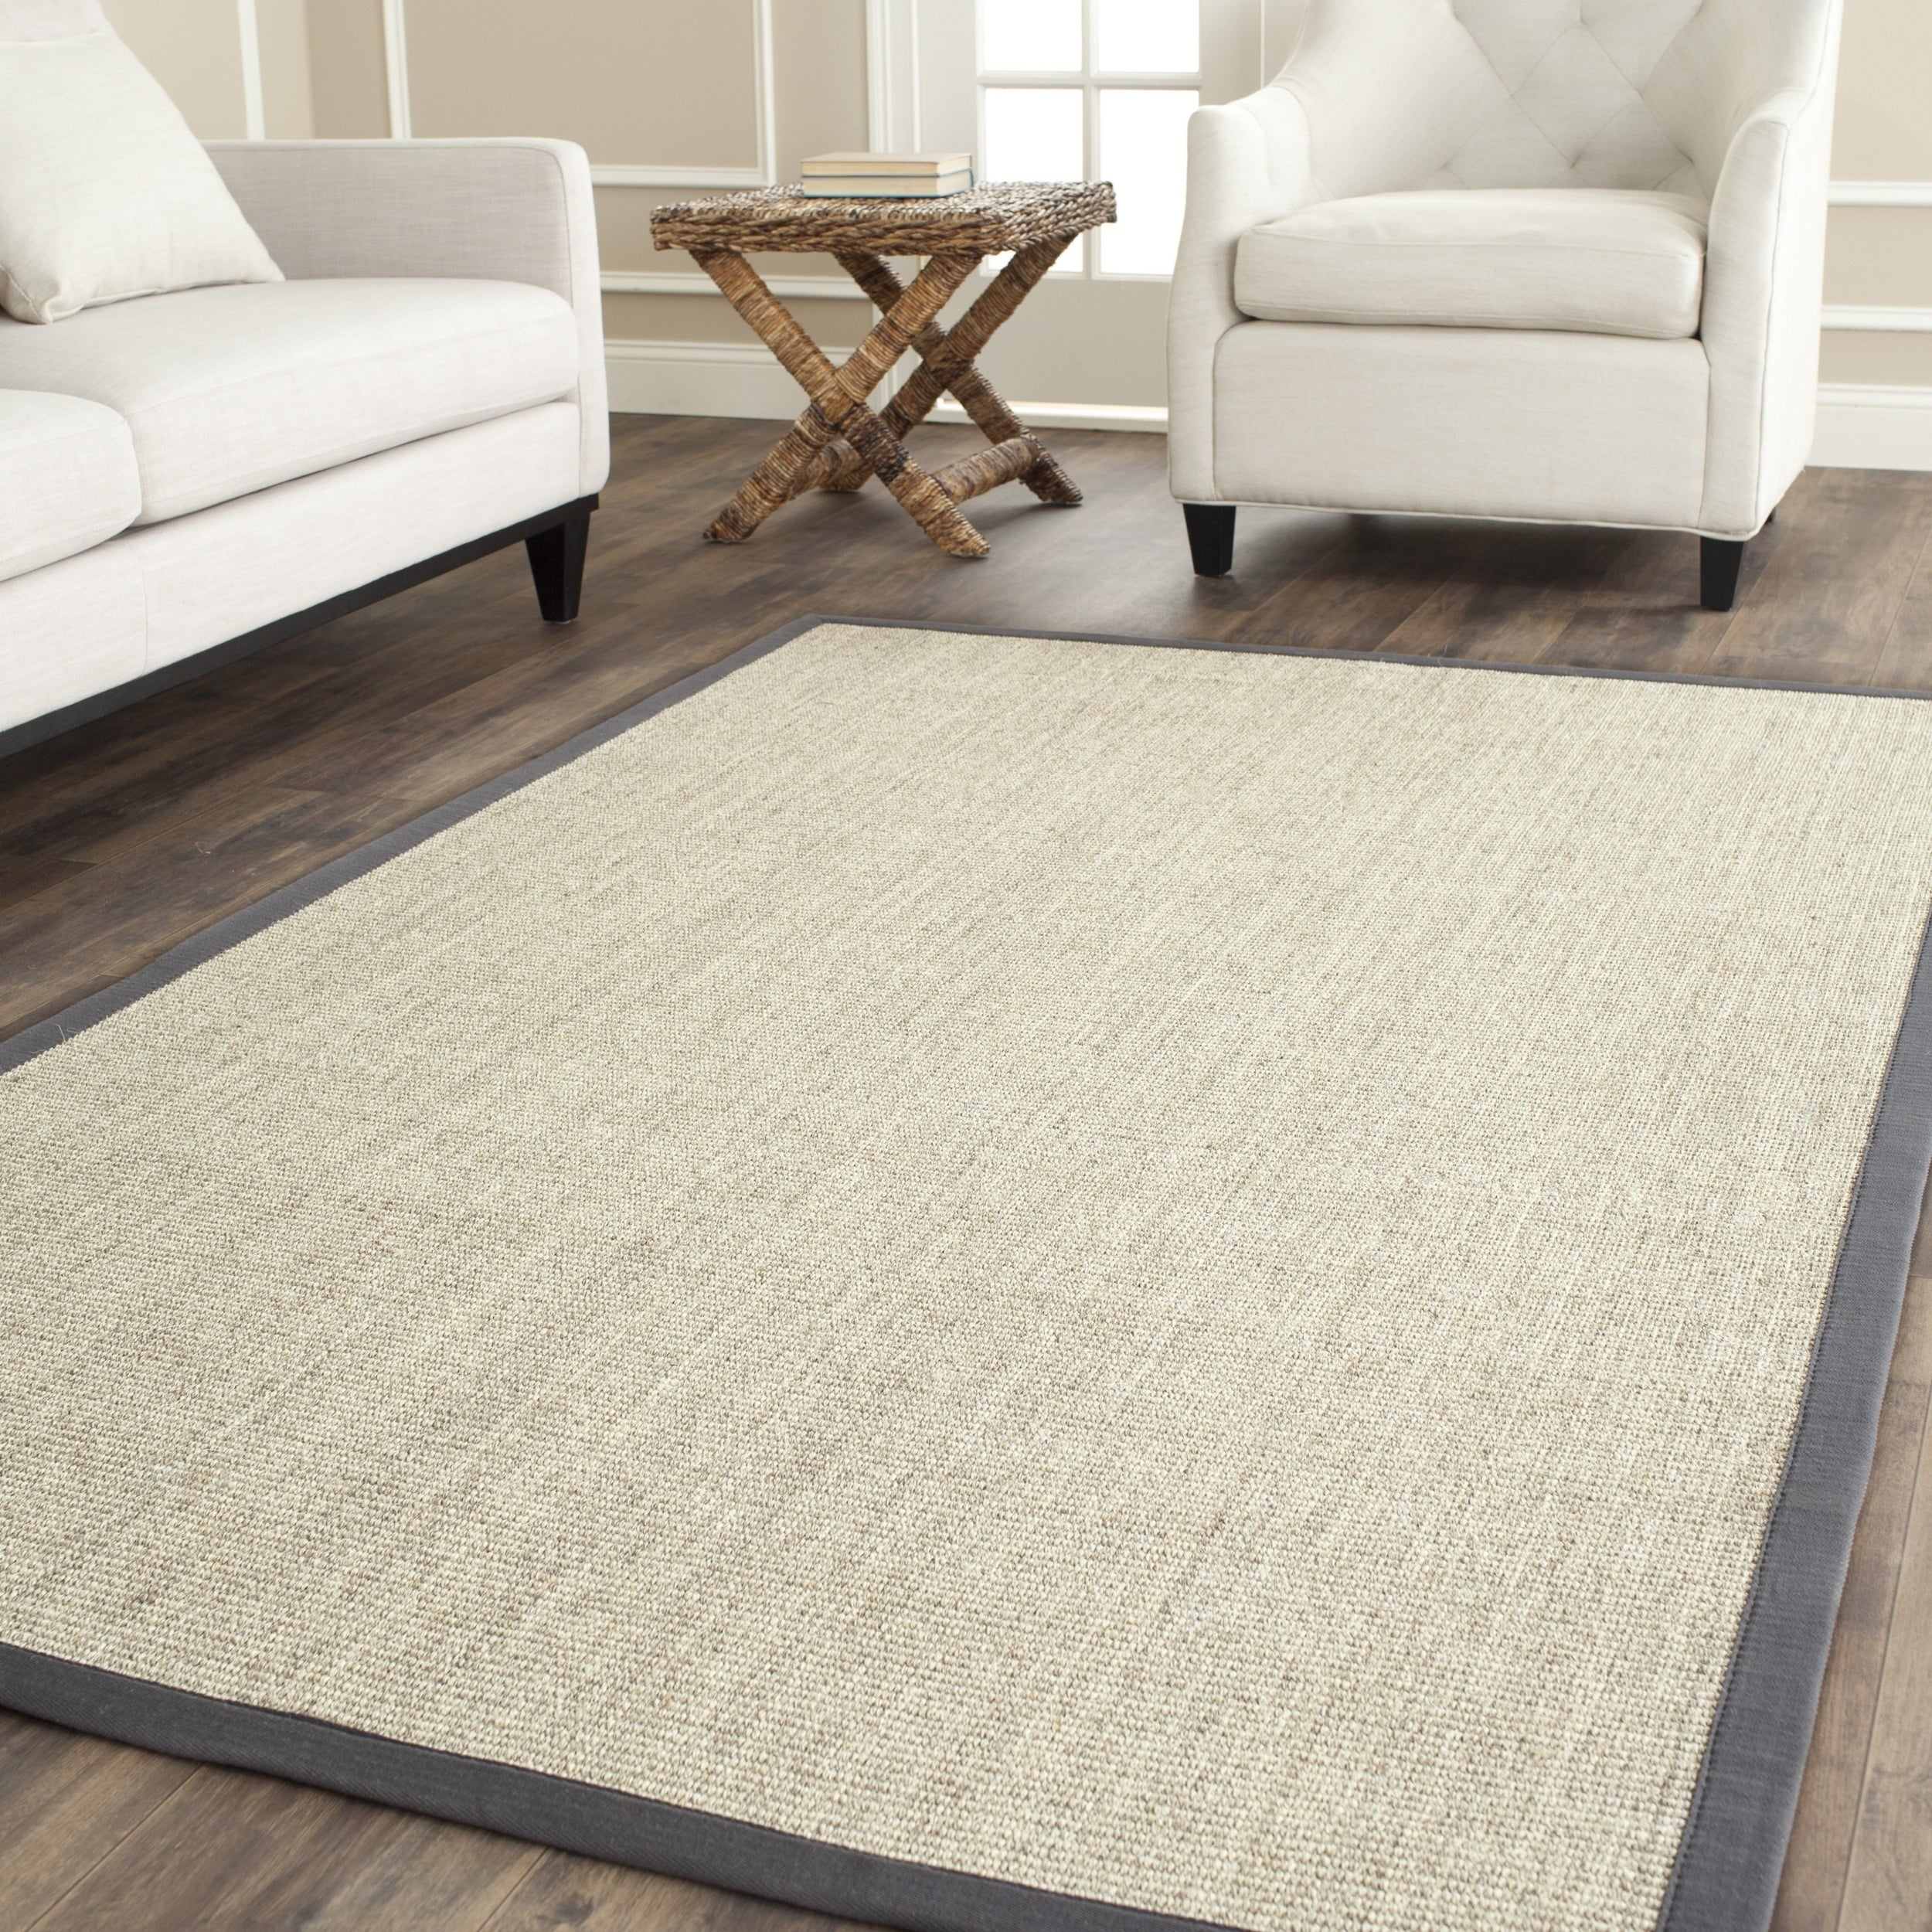 and rug blue cod collection soft com fiber dining geometric safavieh natural dp kitchen rugs amazon cape area diamond woven flatweave x hand jute